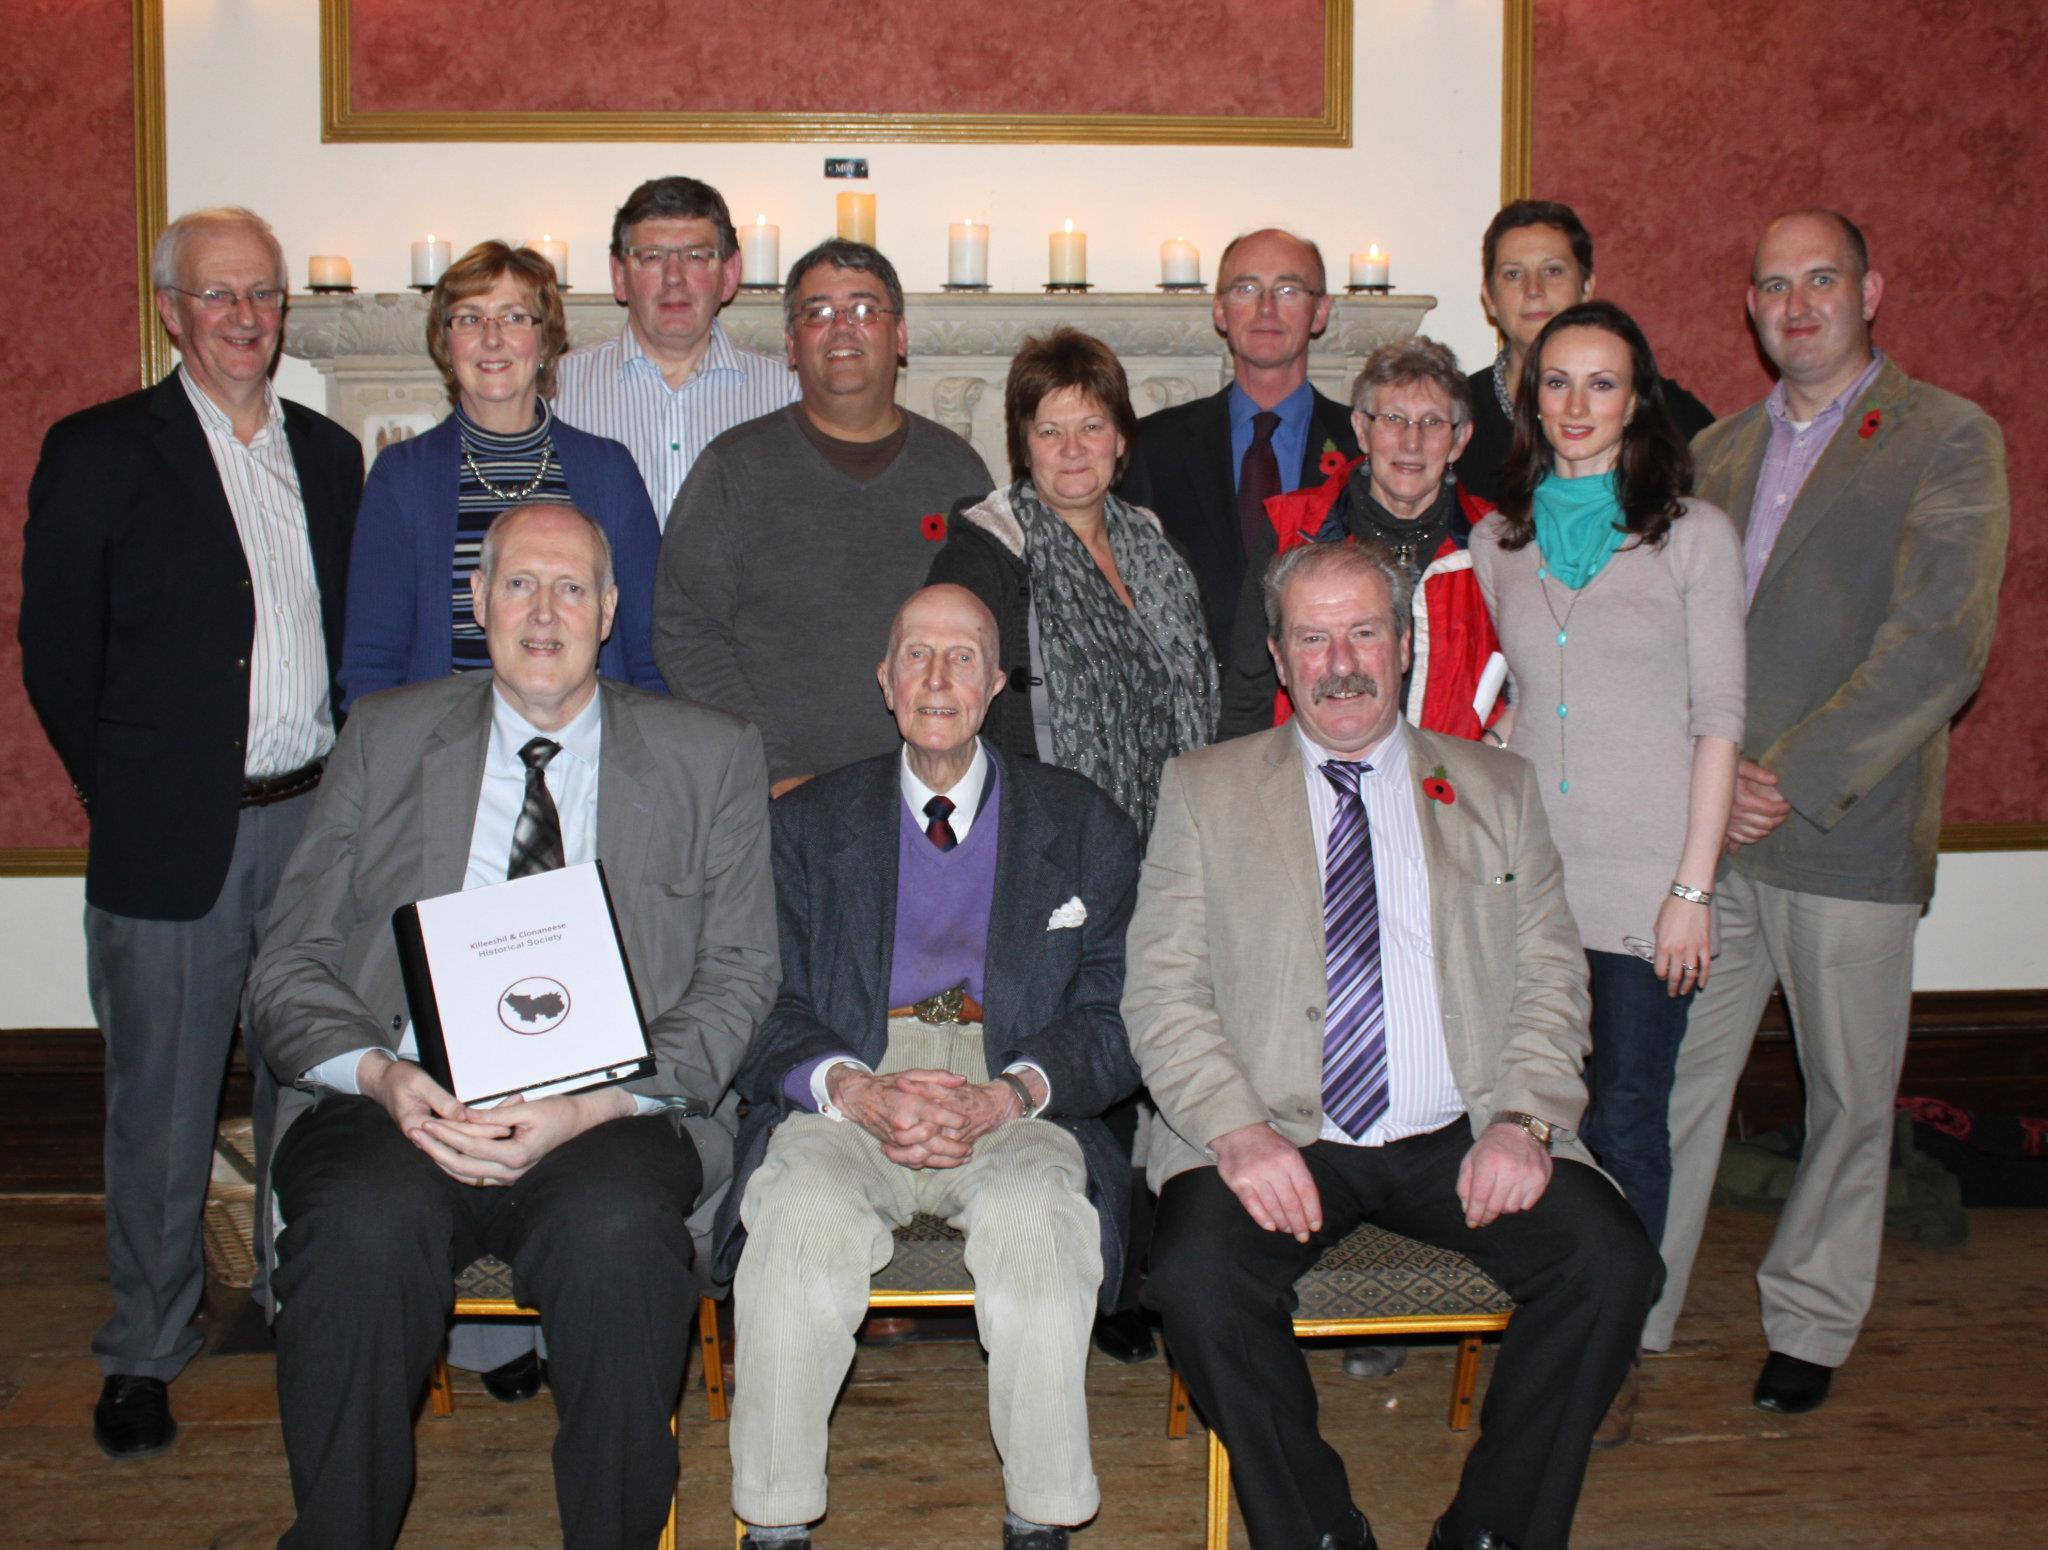 Members of Killeeshil Clonaneese Historical Society with Sir Jack Leslie Nov 2011